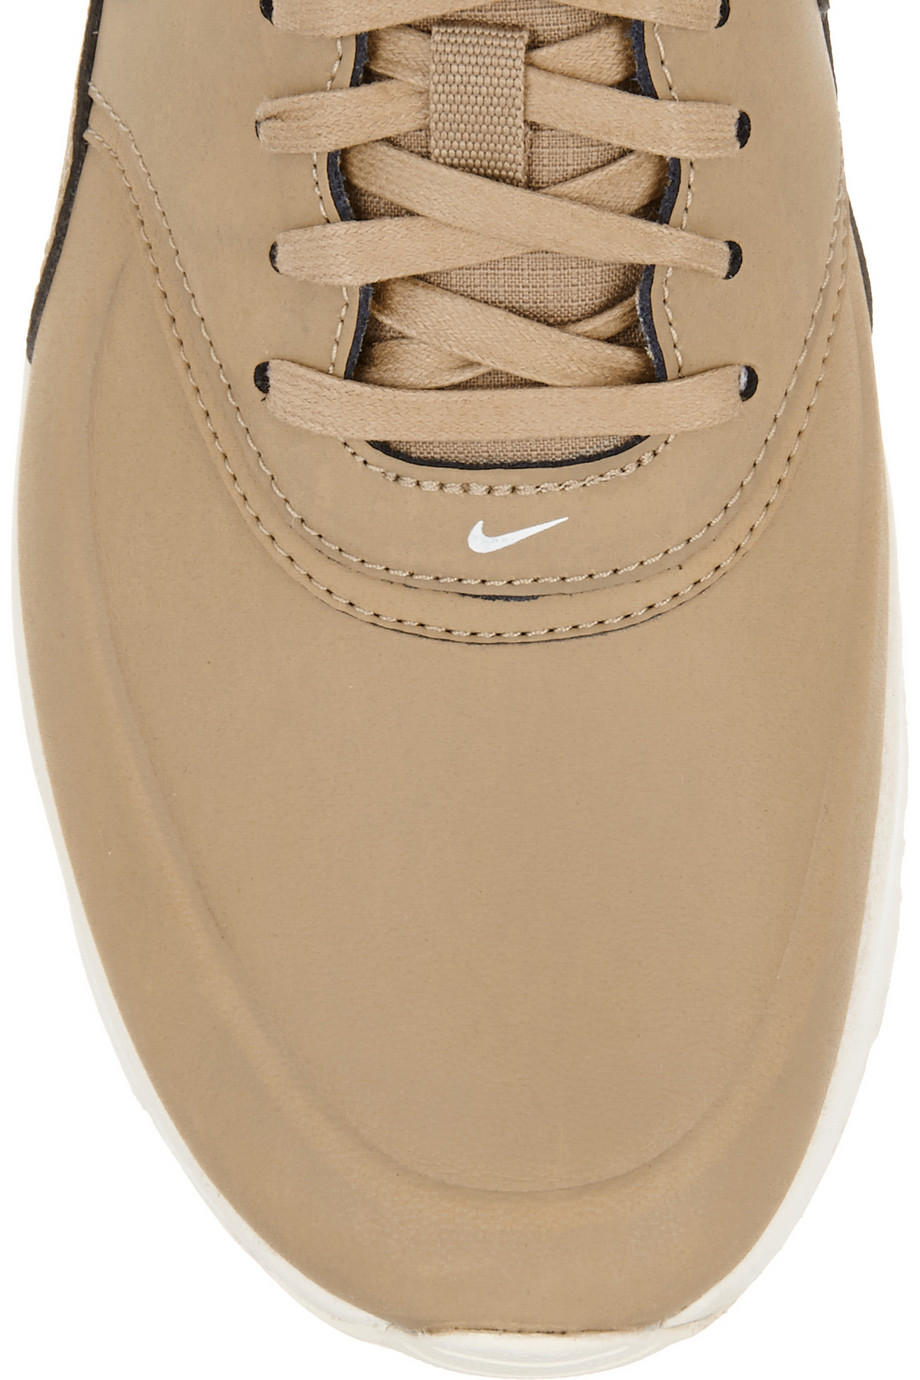 Nike - Air Max Thea leather sneakers from NET-A-PORTER  e4af465bb